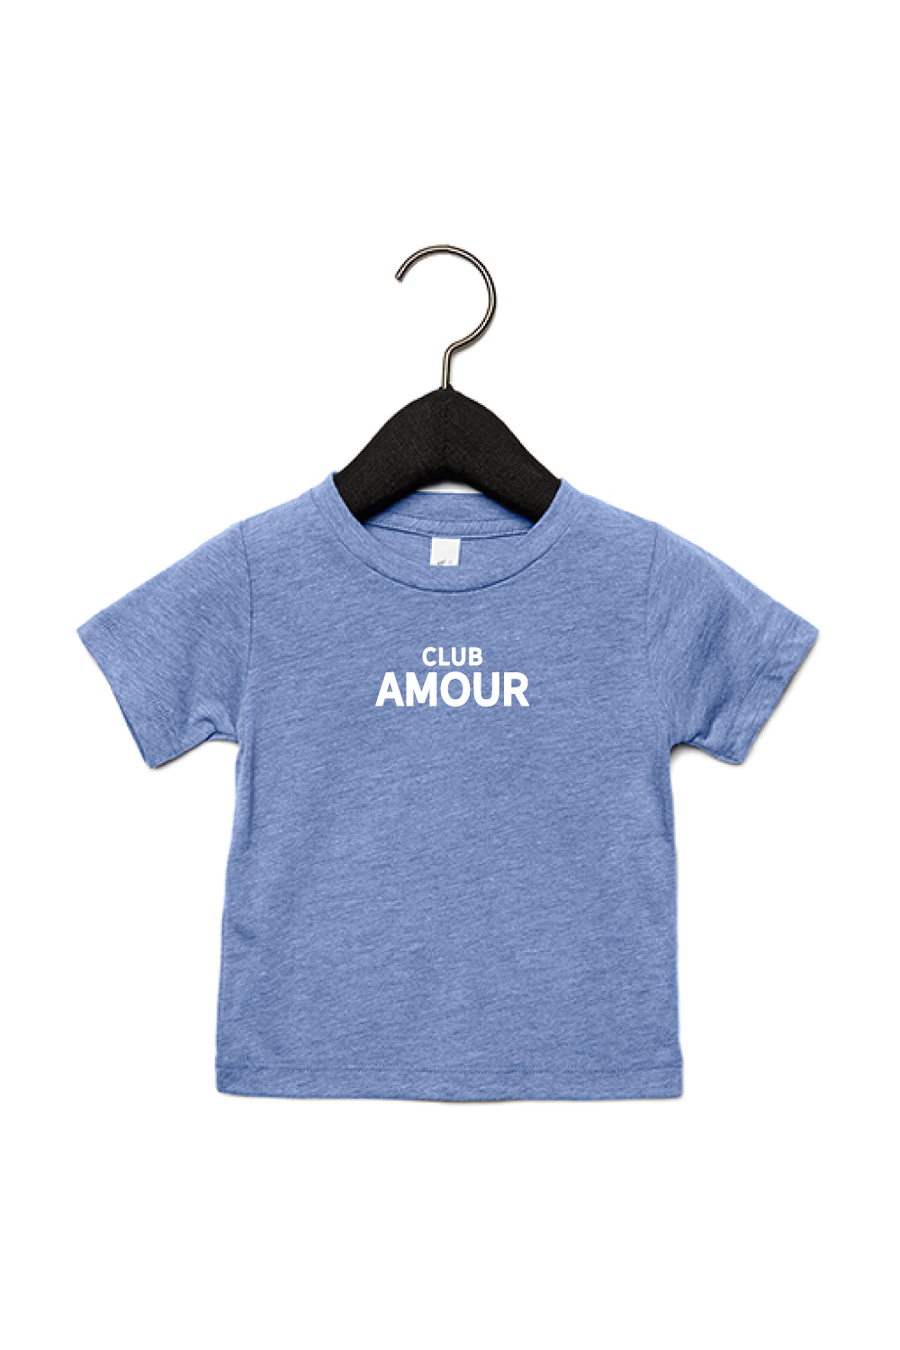 Club amour baby t-shirt * diverse kleuren - Joh Clothing